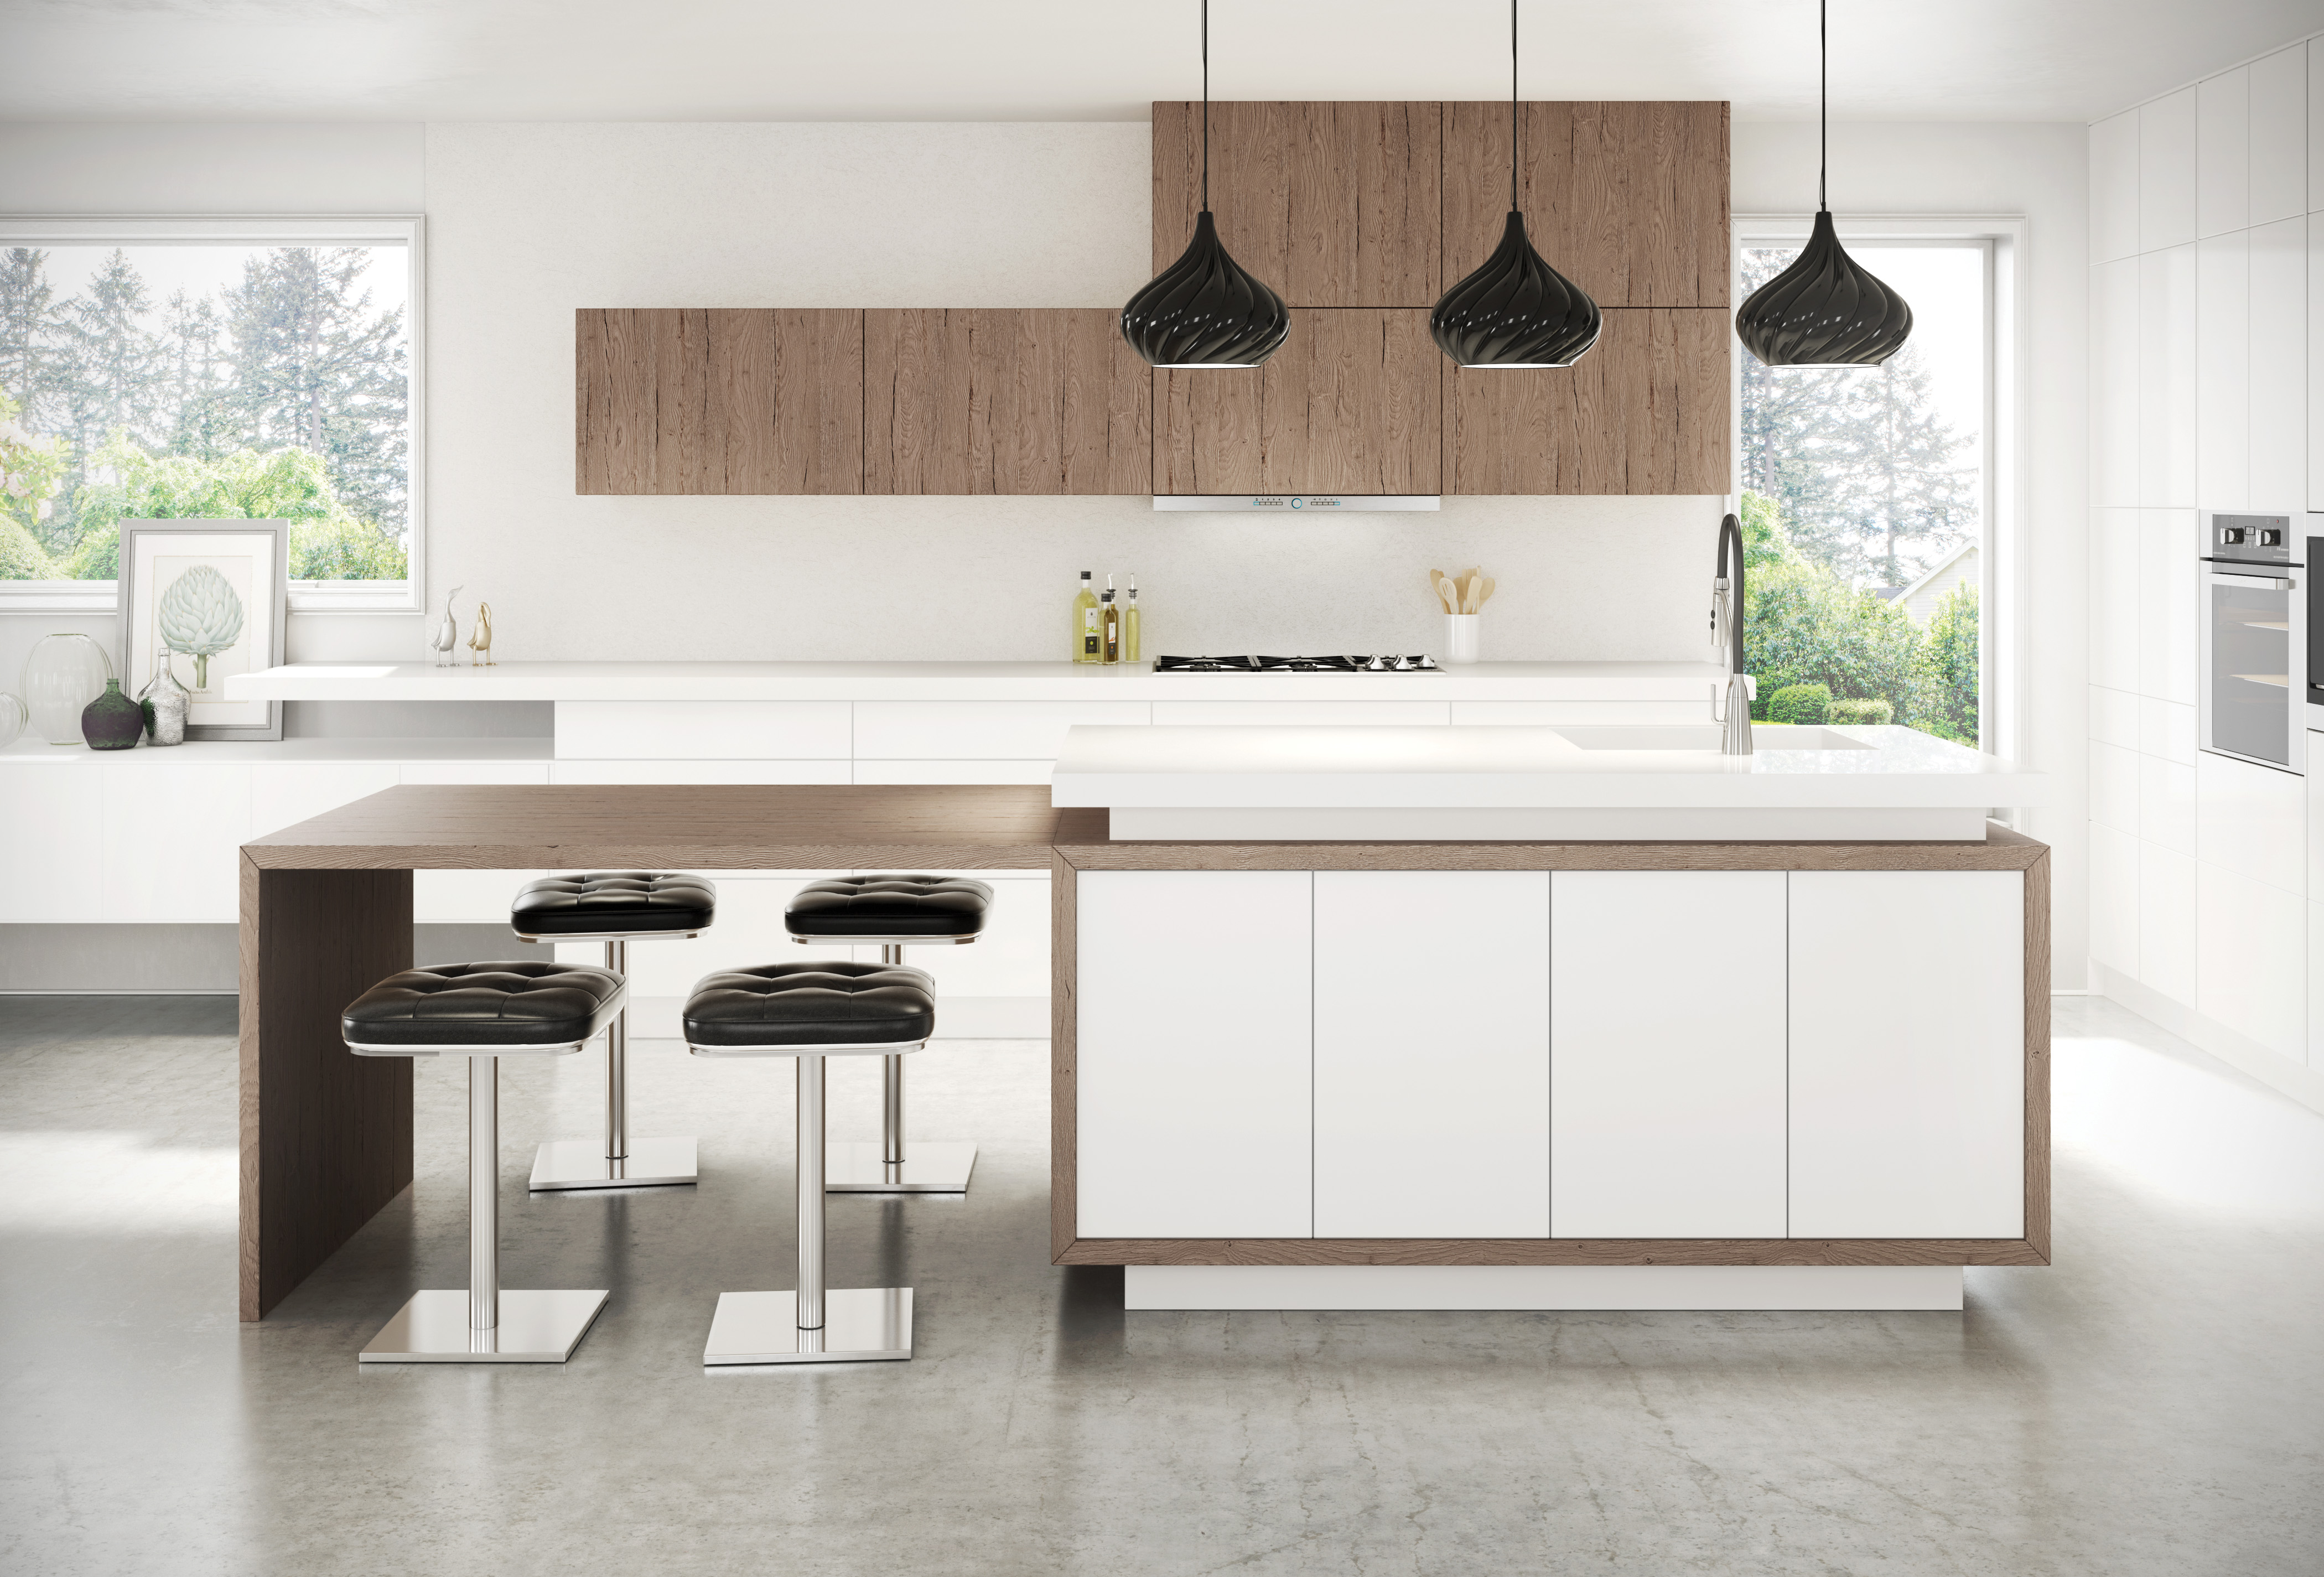 Miralis reveals THREE new looks at the KBIS | Jump Start Communications